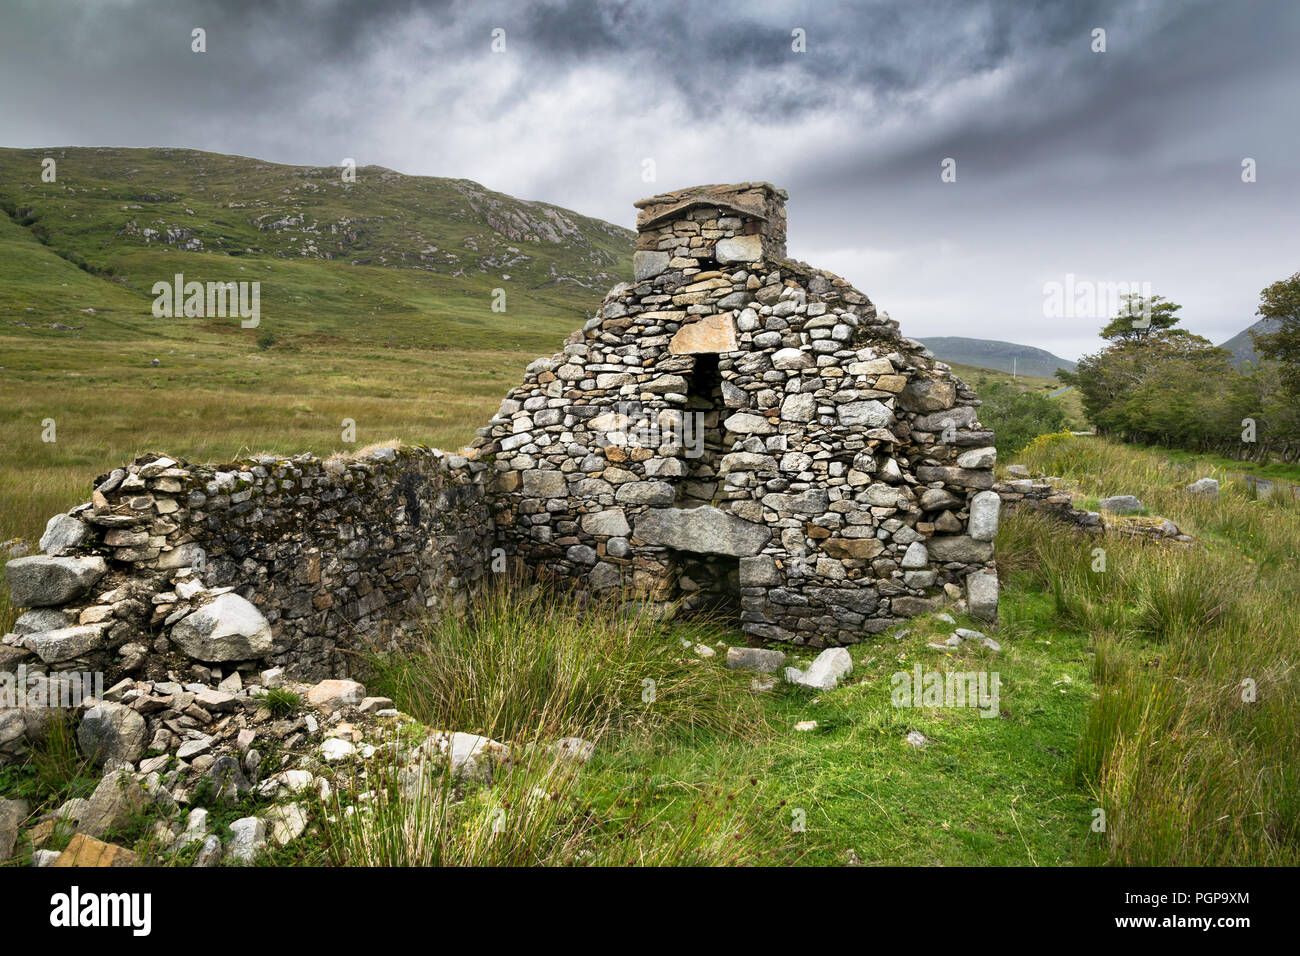 This a picture of the ruins of a Famine cottage in Donegal Ireland. this was one of many houses in an abondon village in an isolated part of the mount - Stock Image